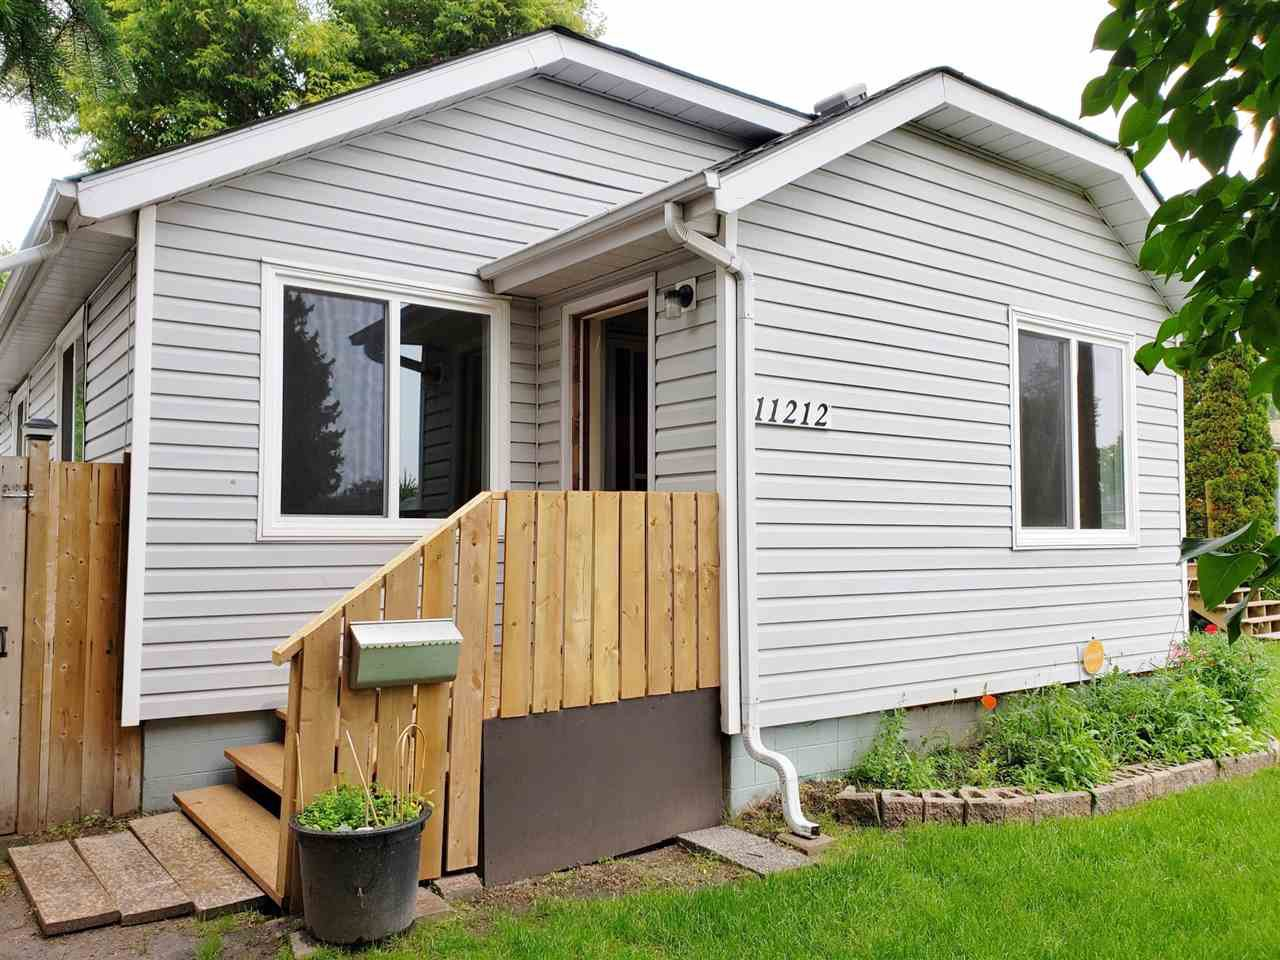 Main Photo: 11212 50 Street in Edmonton: Zone 09 House for sale : MLS®# E4164157